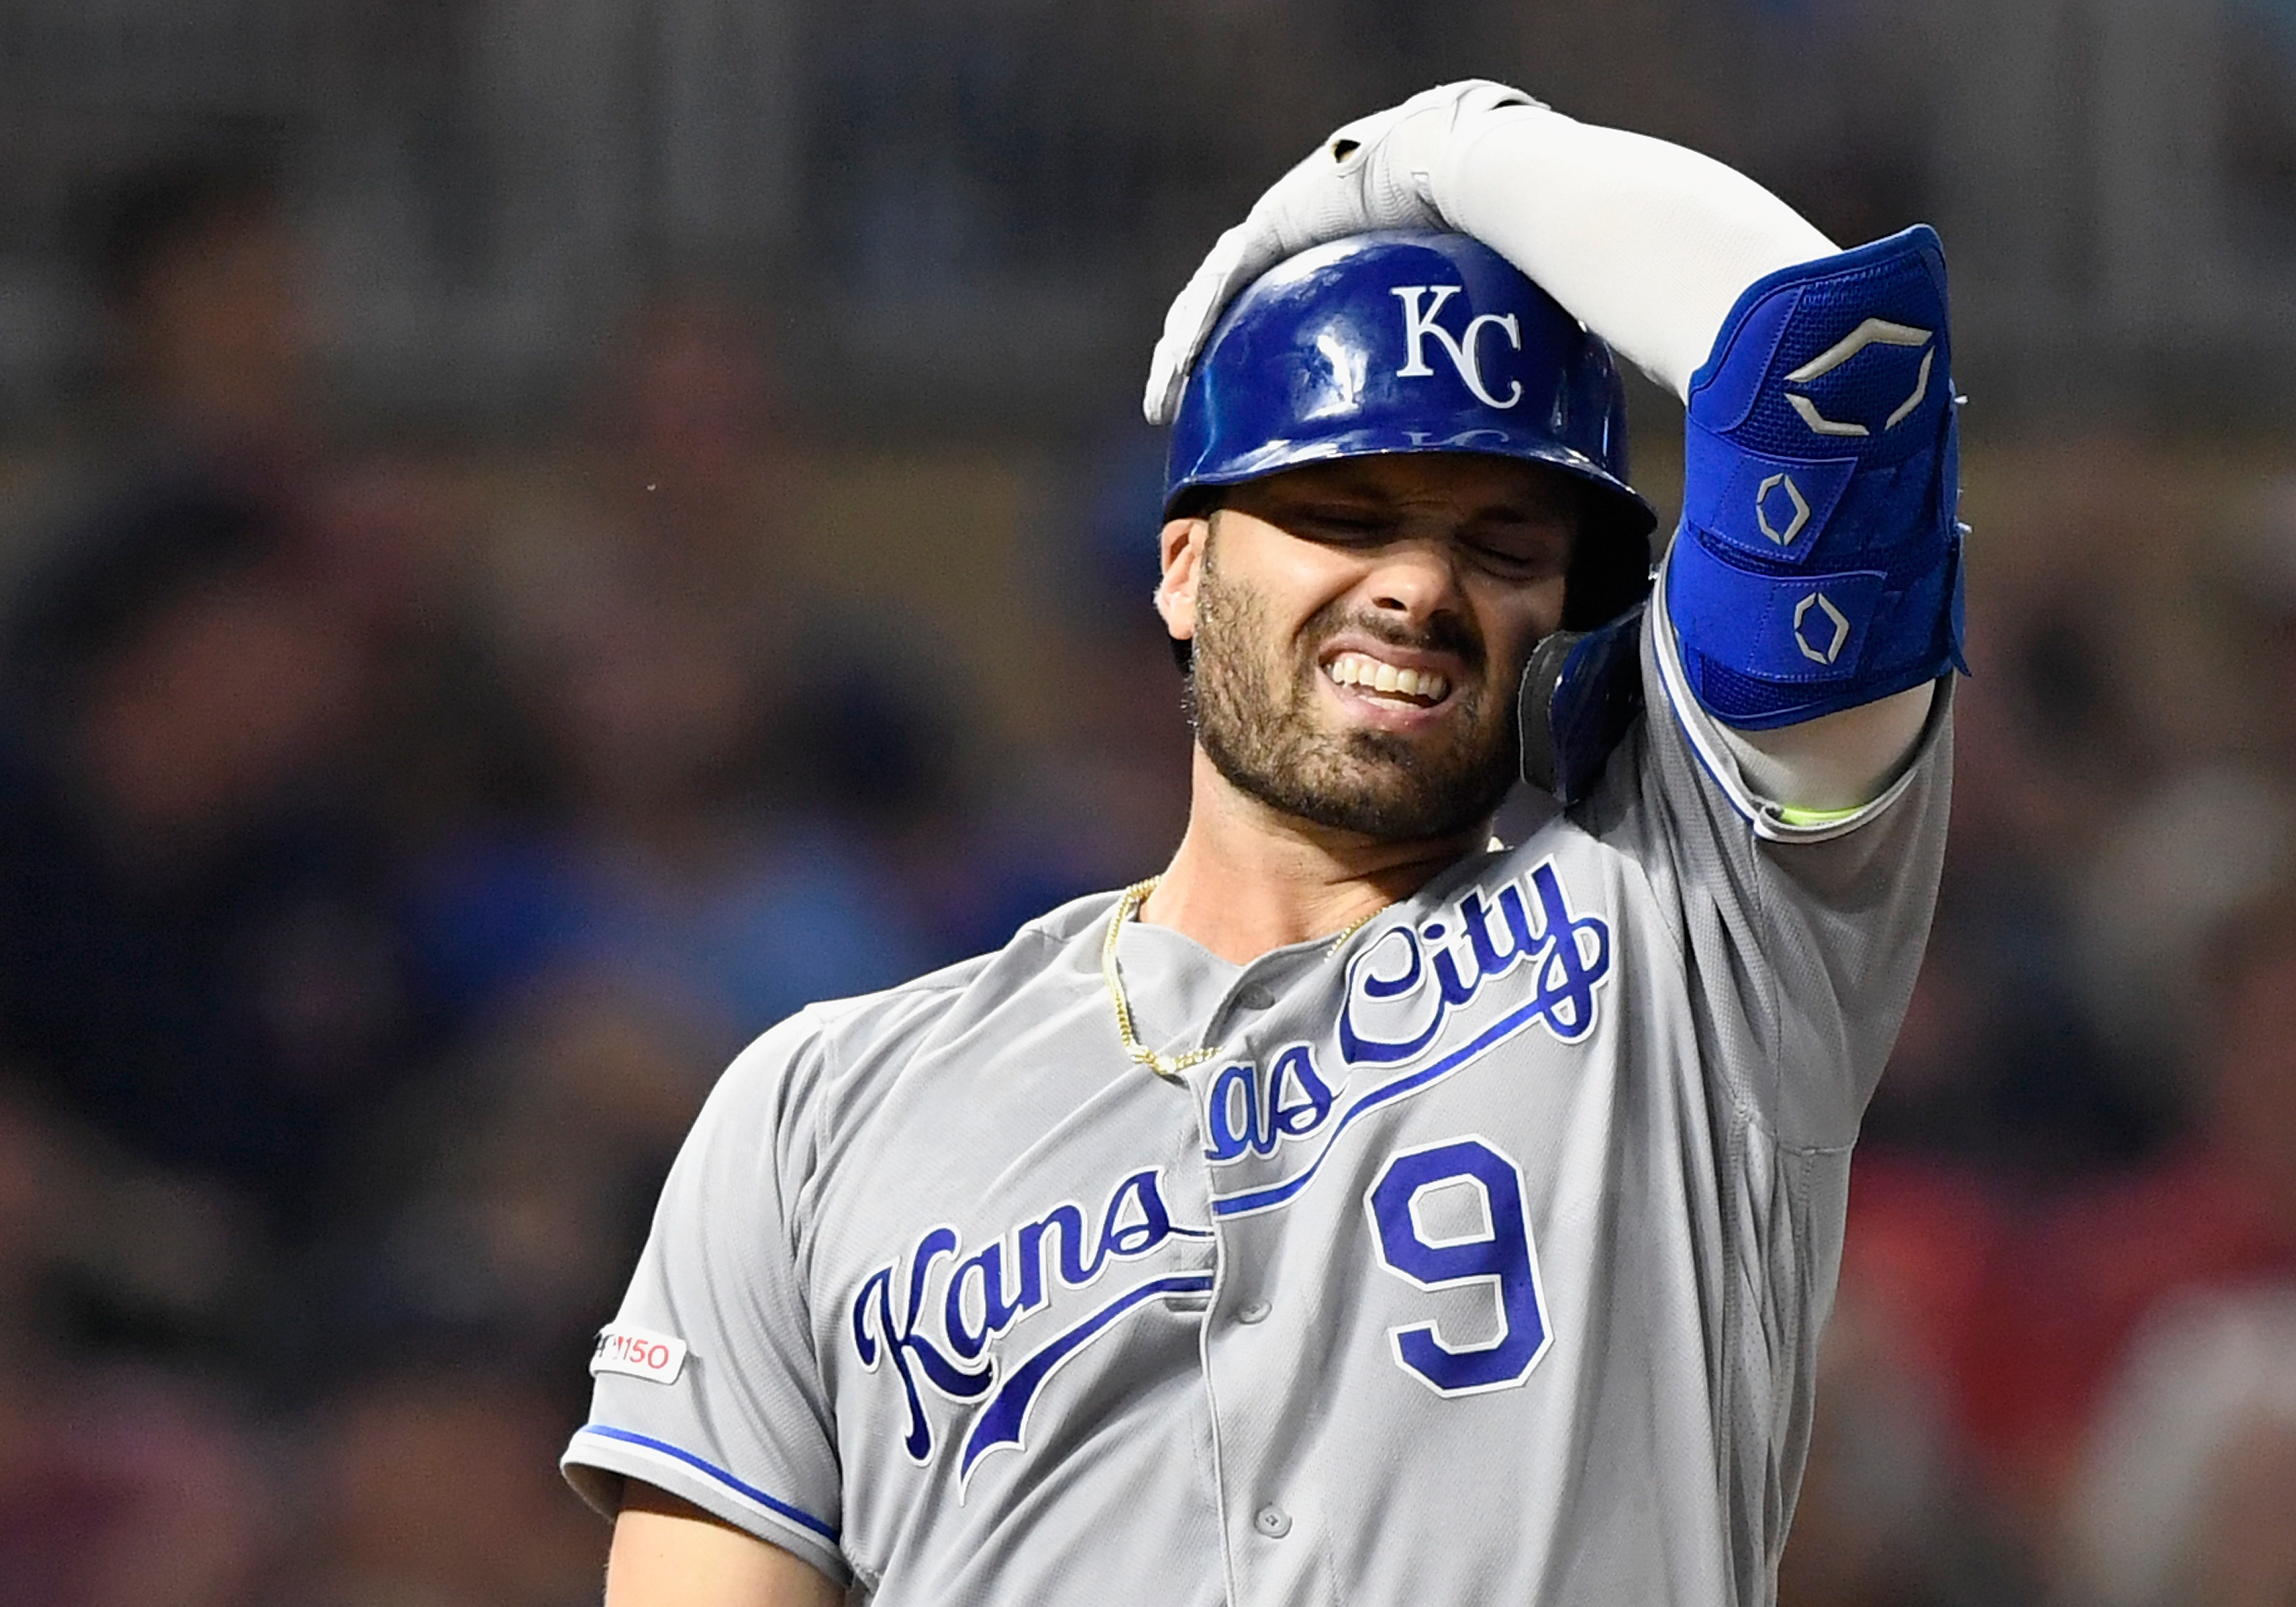 Ryan McBroom #9 of the Kansas City Royals reacts to striking out against the Minnesota Twins during the sixth inning of the game at Target Field on September 20, 2019 in Minneapolis, Minnesota. The Twins defeated the Royals 4-3.